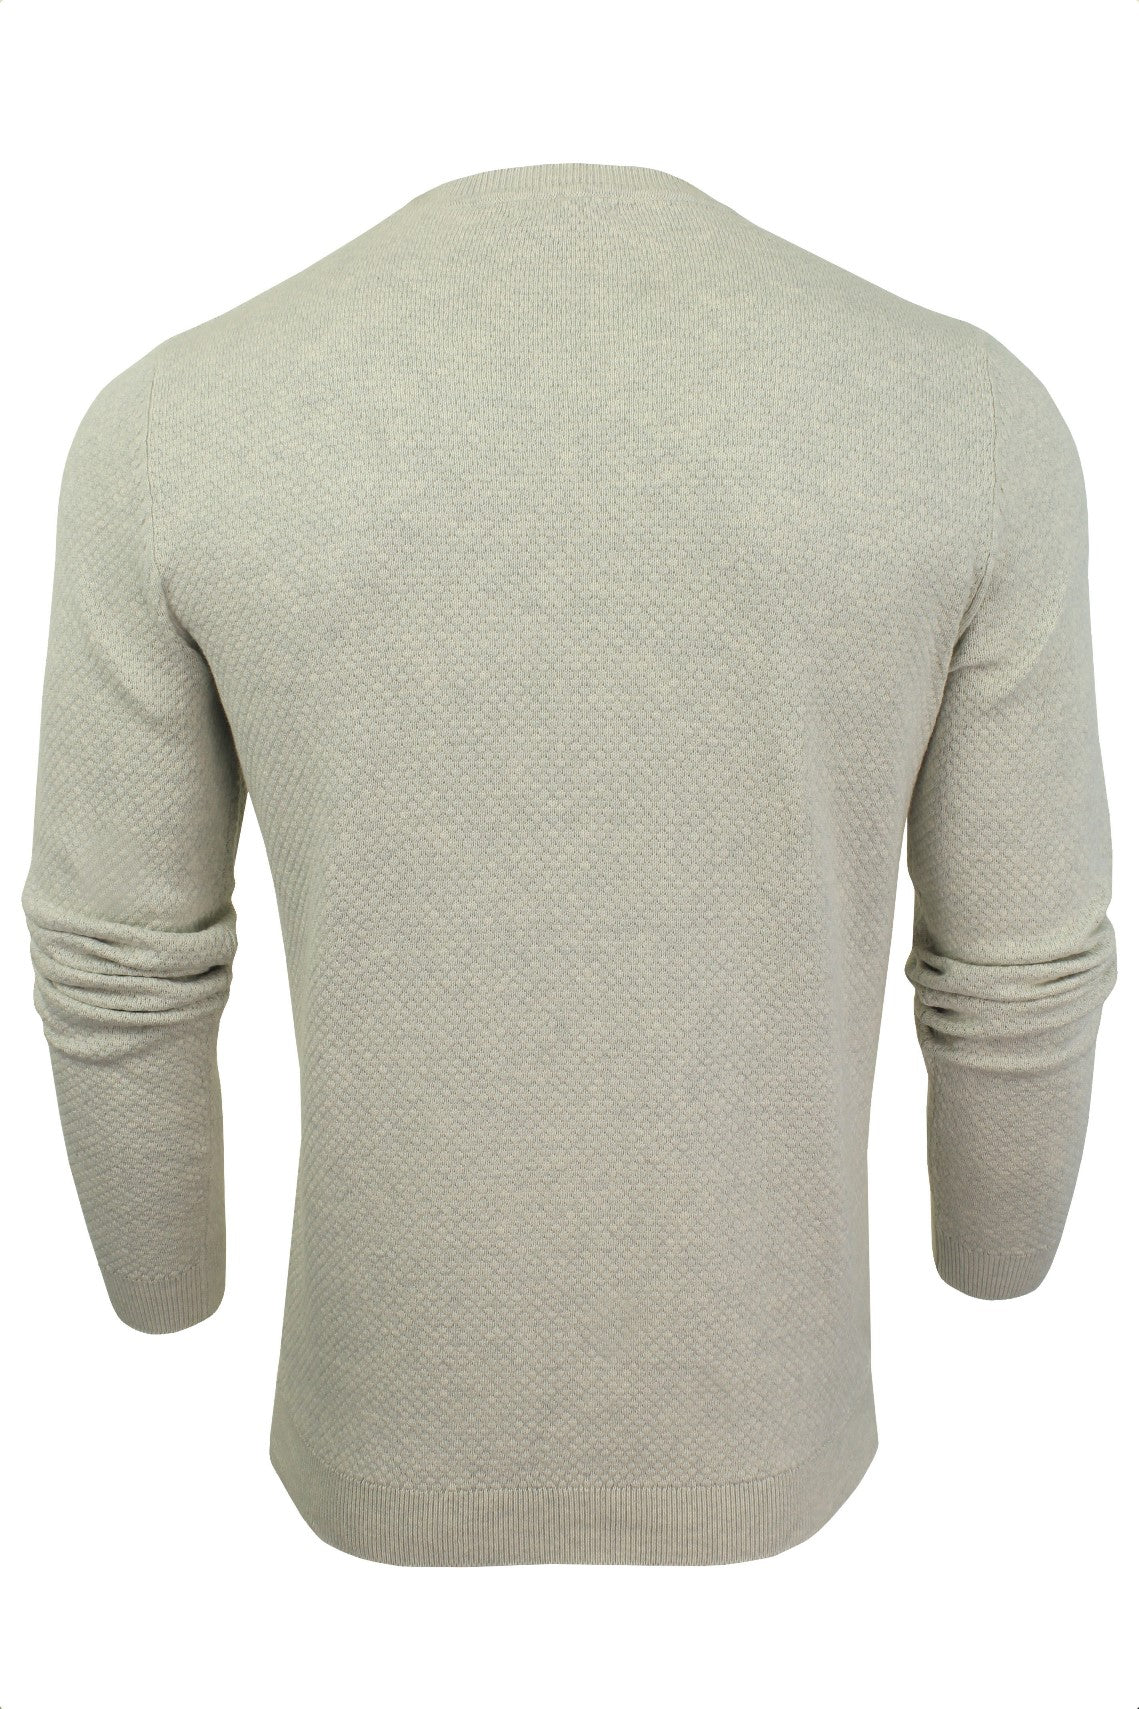 Xact Mens Crew Neck Cotton Jumper_03_XK1013_Birch Marl